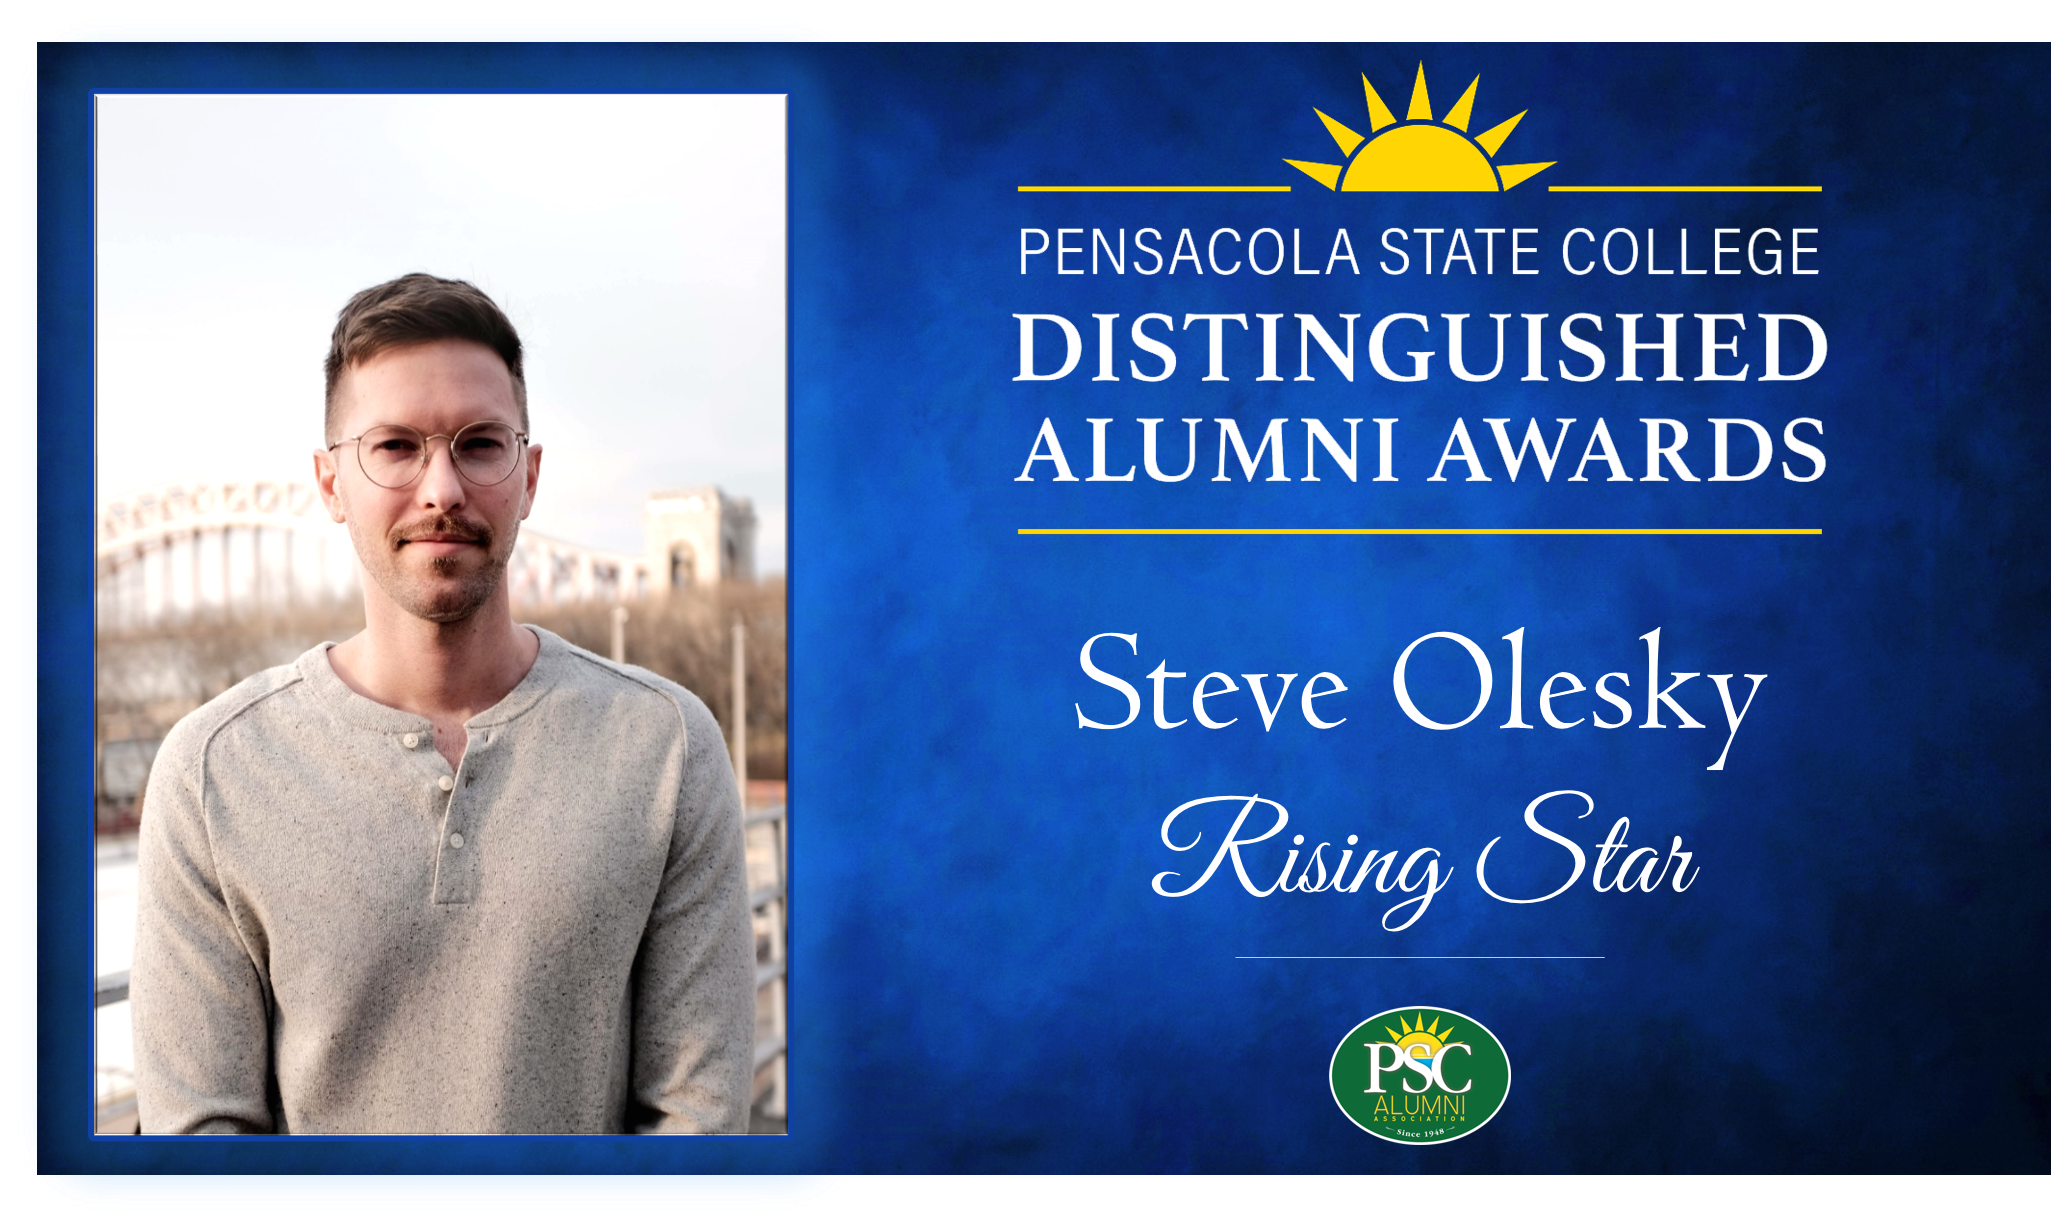 decorative image of olesky , The 2019 Distinguished Alumni Awards 2019-05-06 10:19:29